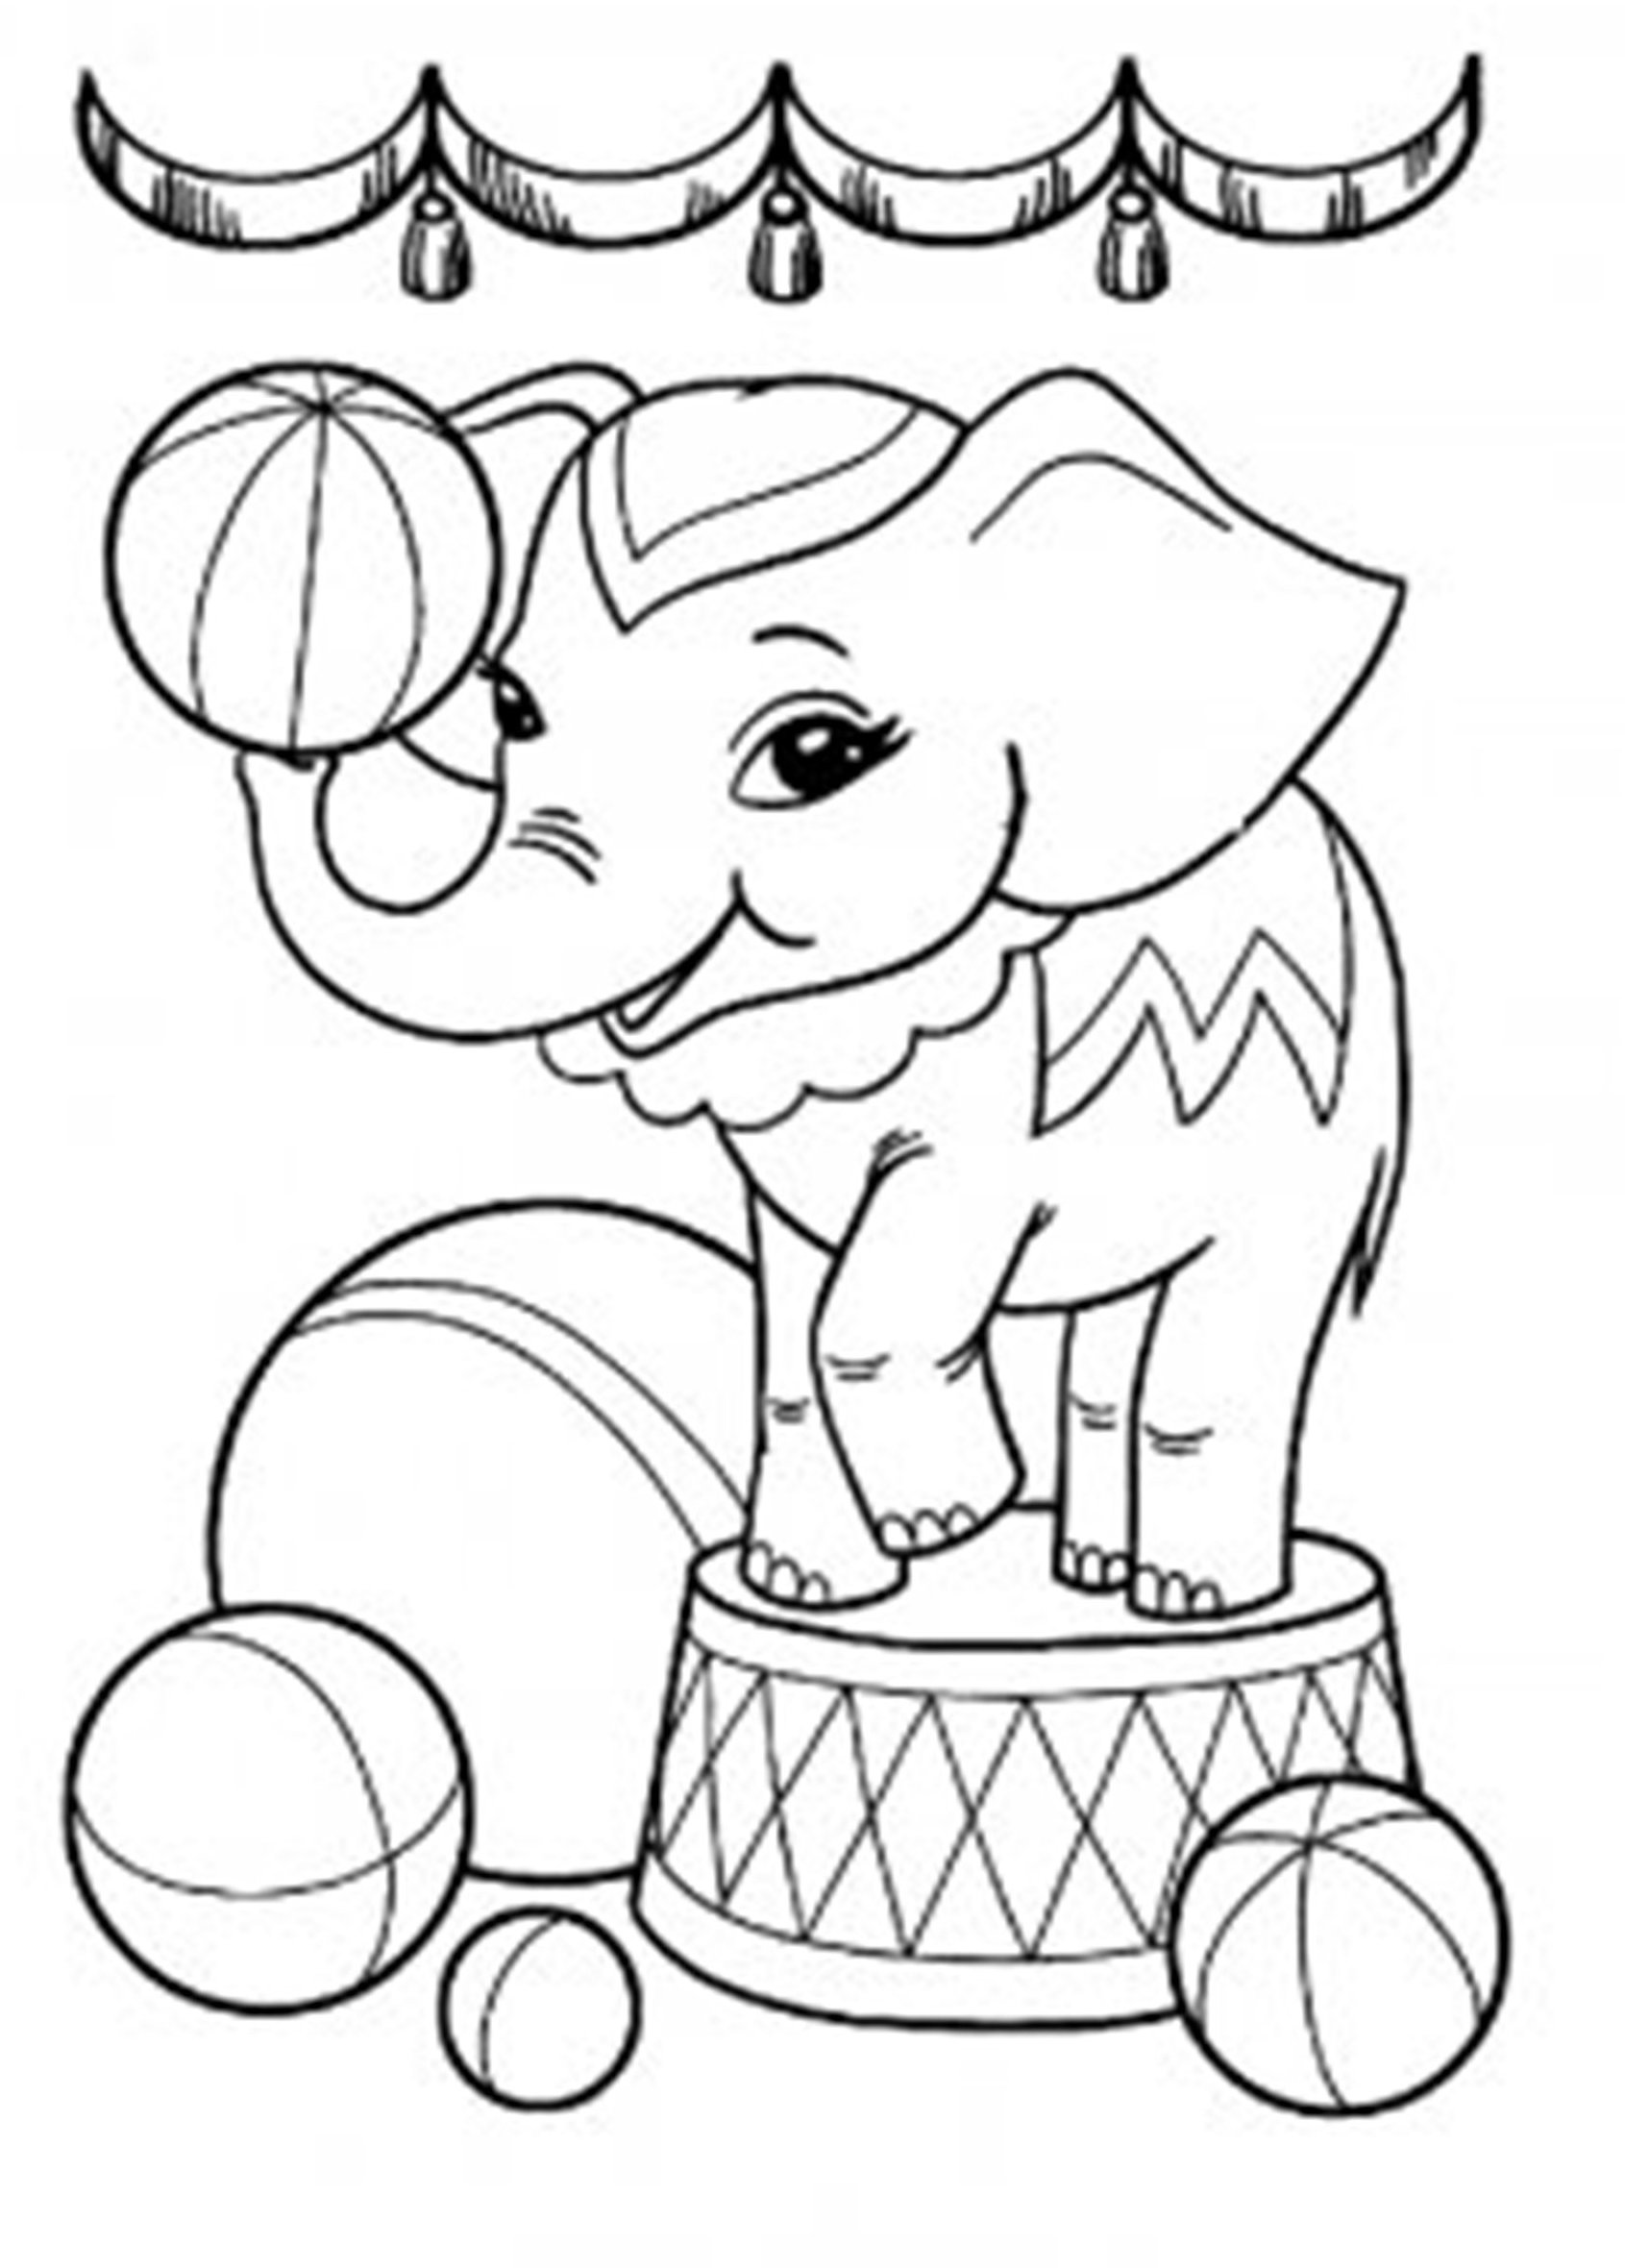 elephant coloring sheets printable elephant coloring pages for kids printable for free sheets elephant printable coloring